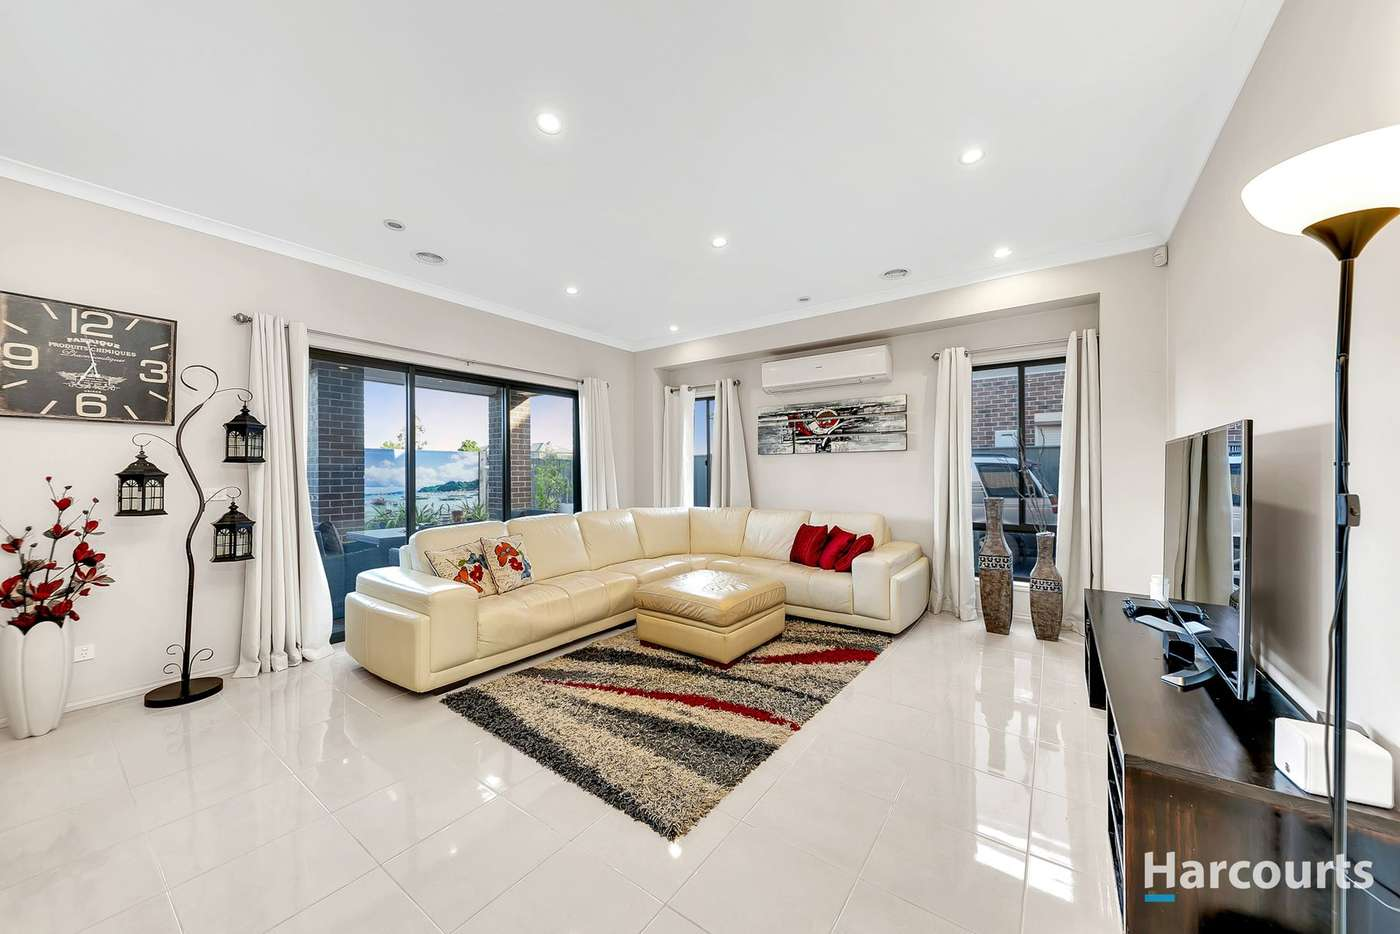 Fifth view of Homely house listing, 19 Beaconsfield Lane, Caroline Springs VIC 3023